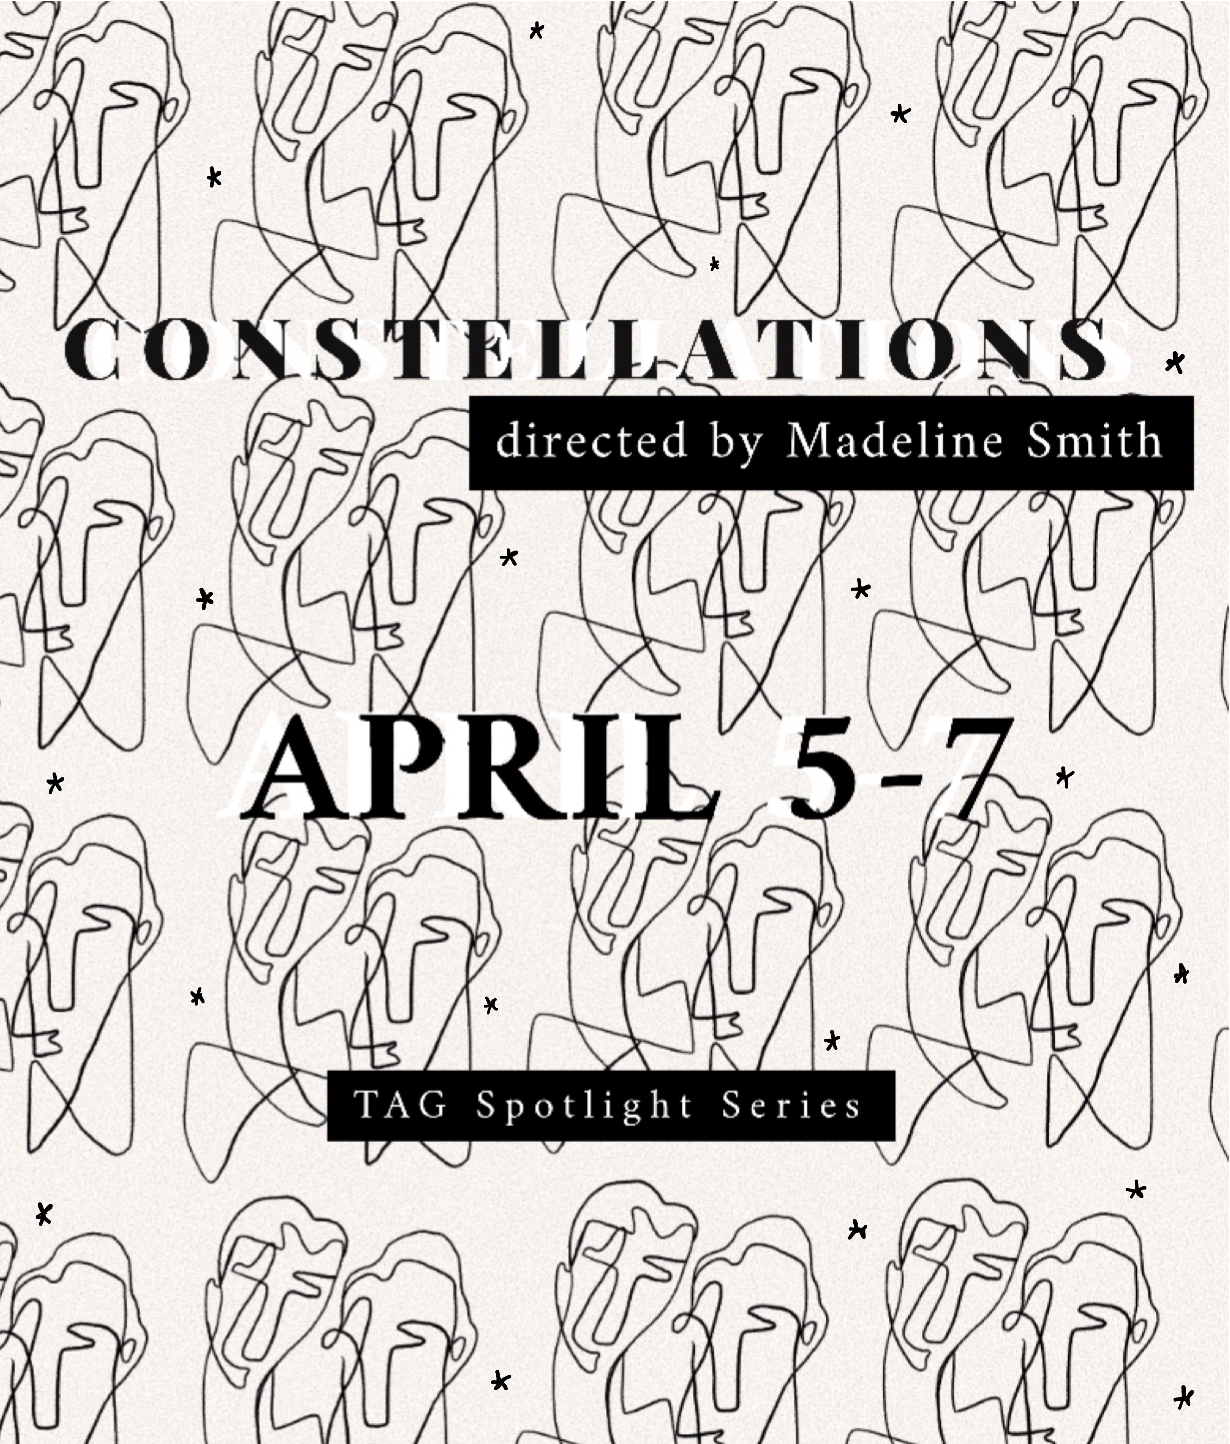 Constellations - directed by Madeline Smith   April 5-7   TAG Spotlight Series